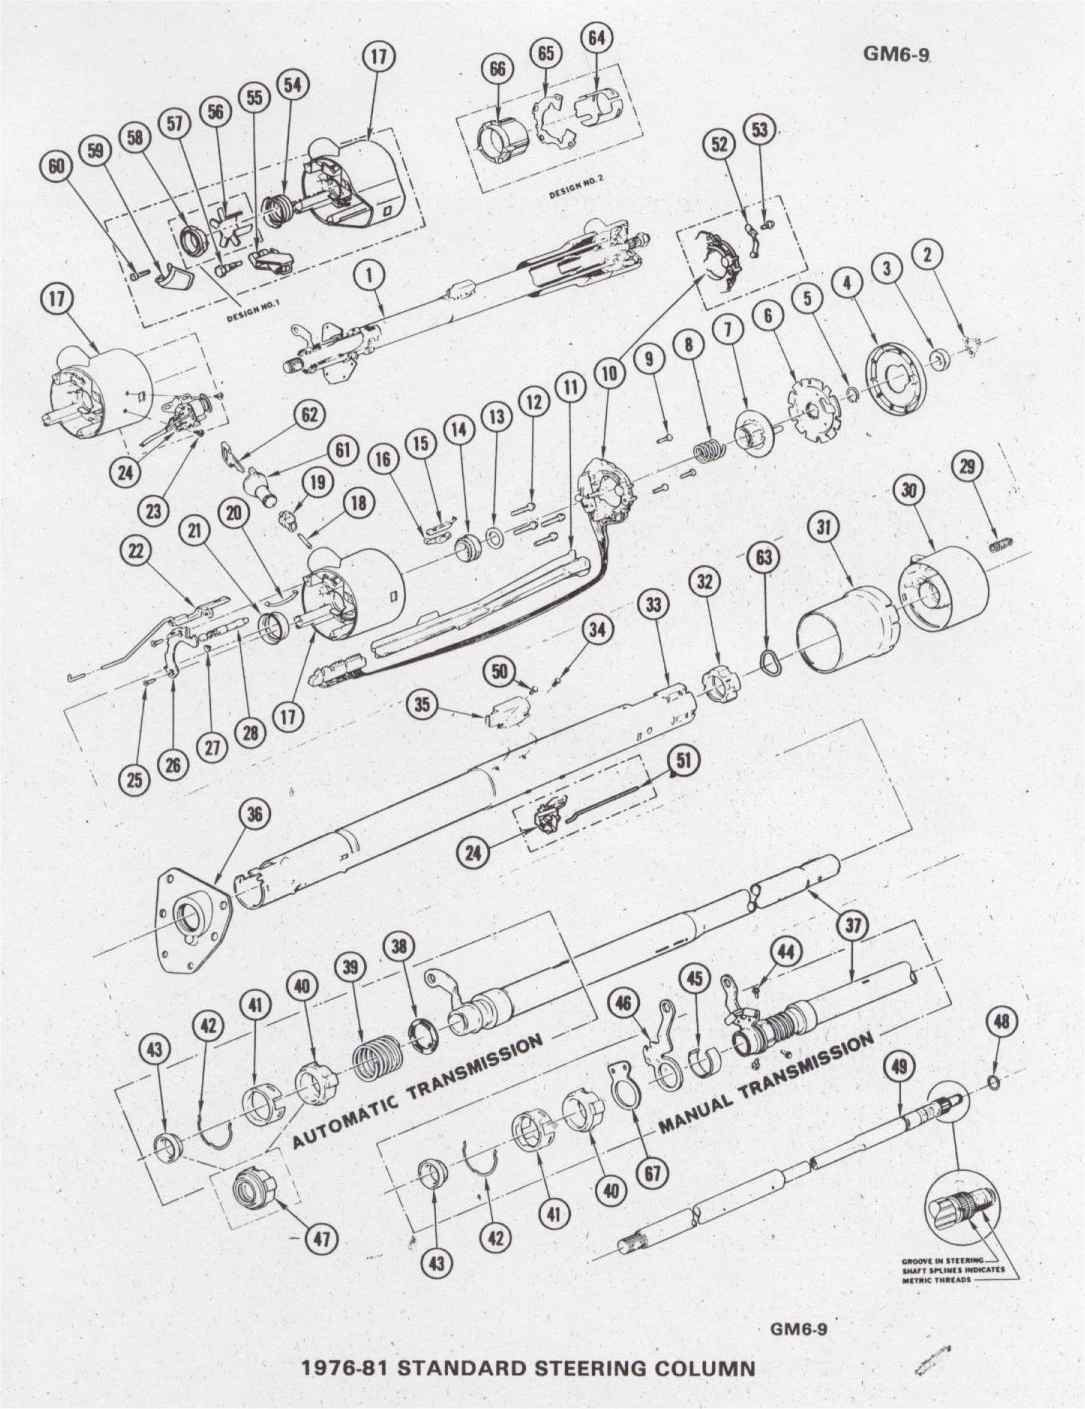 chevrolet alternator wiring diagram 3 wire condenser fan motor 1981 camaro library for gmc std steering column